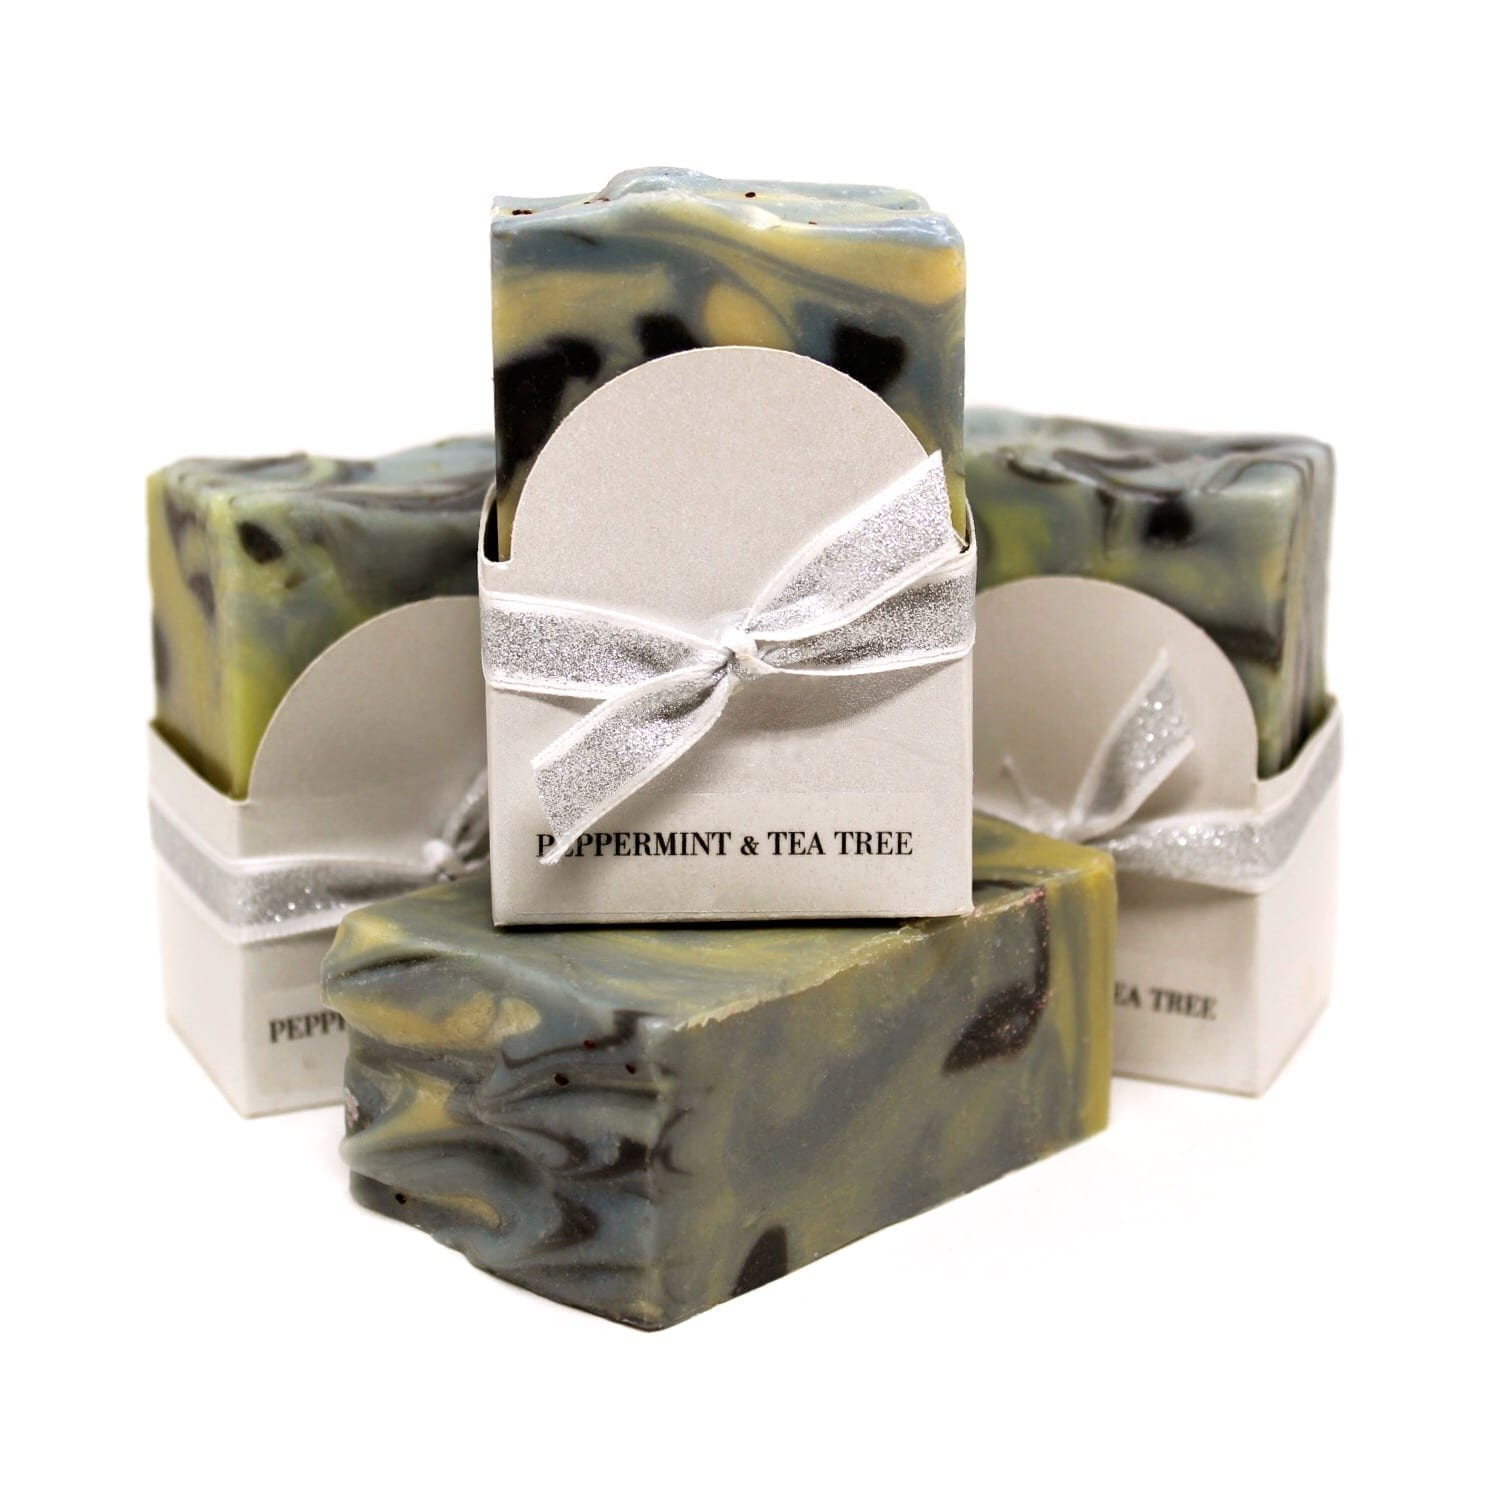 Peppermint & Tea Tree Goat Milk Soap